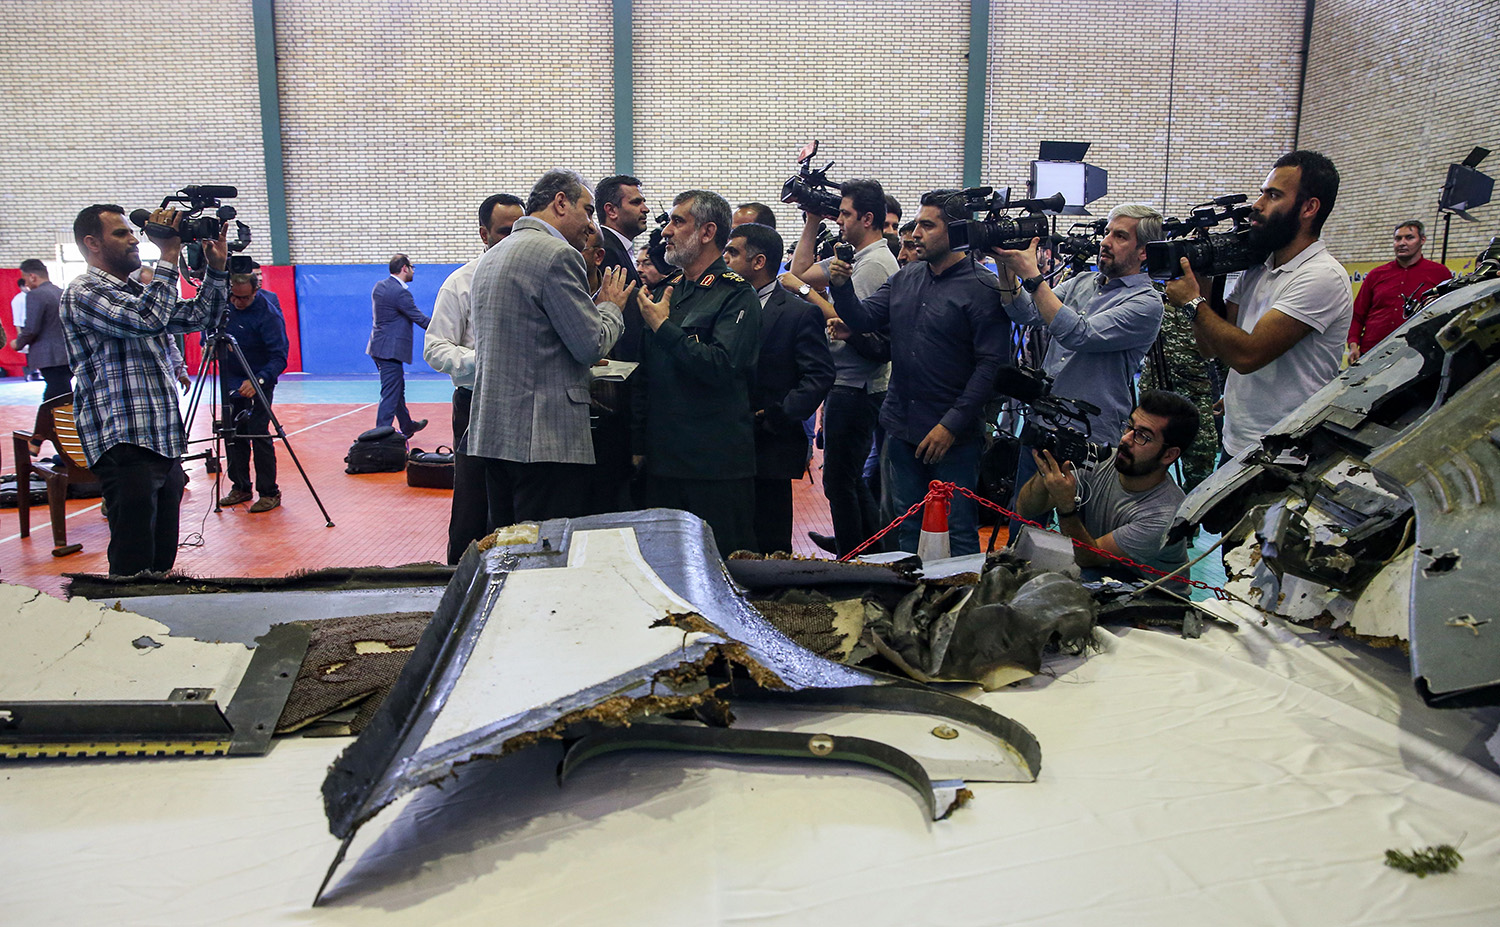 Gen. Amir Ali Hajizadeh, center, Iran's head of the Revolutionary Guard's aerospace division, speaks to media next to debris from a downed U.S. drone reportedly recovered within Iran's territorial waters and put on display by the Revolutionary Guard in the capital Tehran on June 21, 2019. (Meghdad Madadi/AFP/Getty Images)